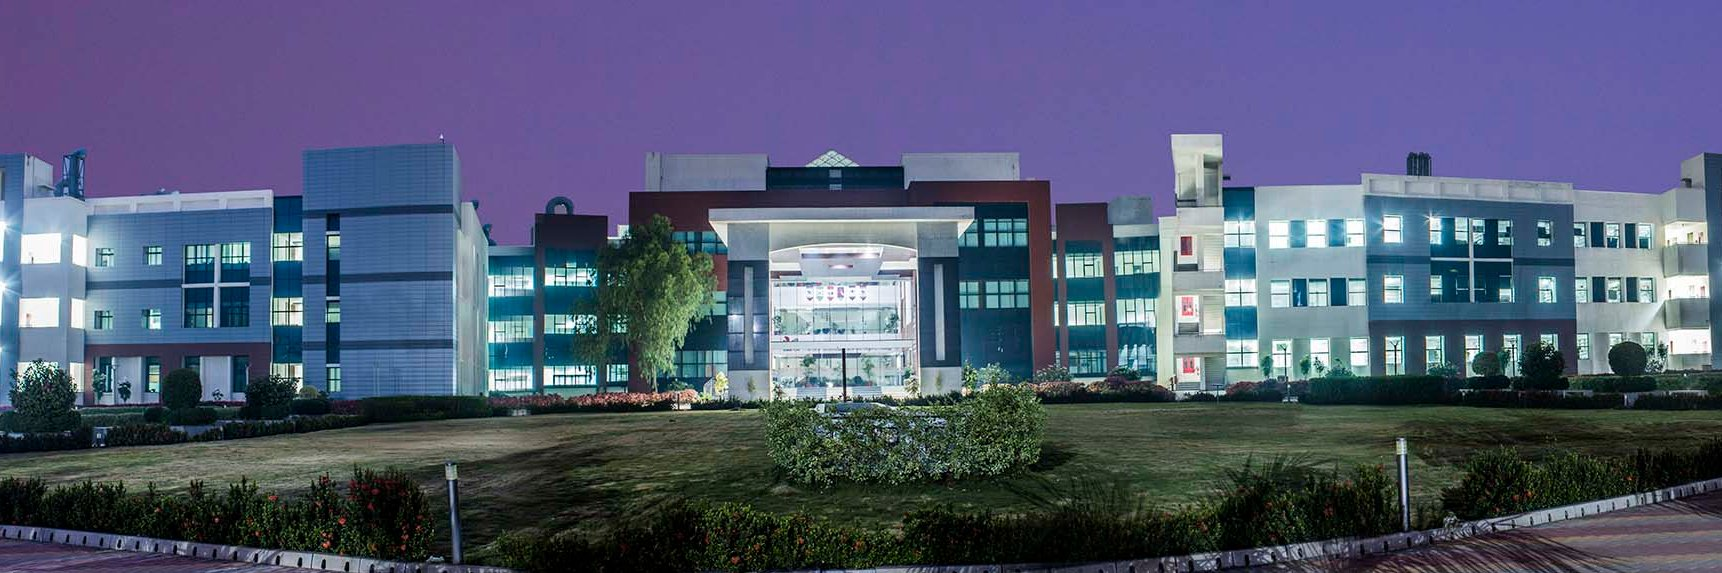 Indian Institute of Science Education and Research, Pune's official Twitter account